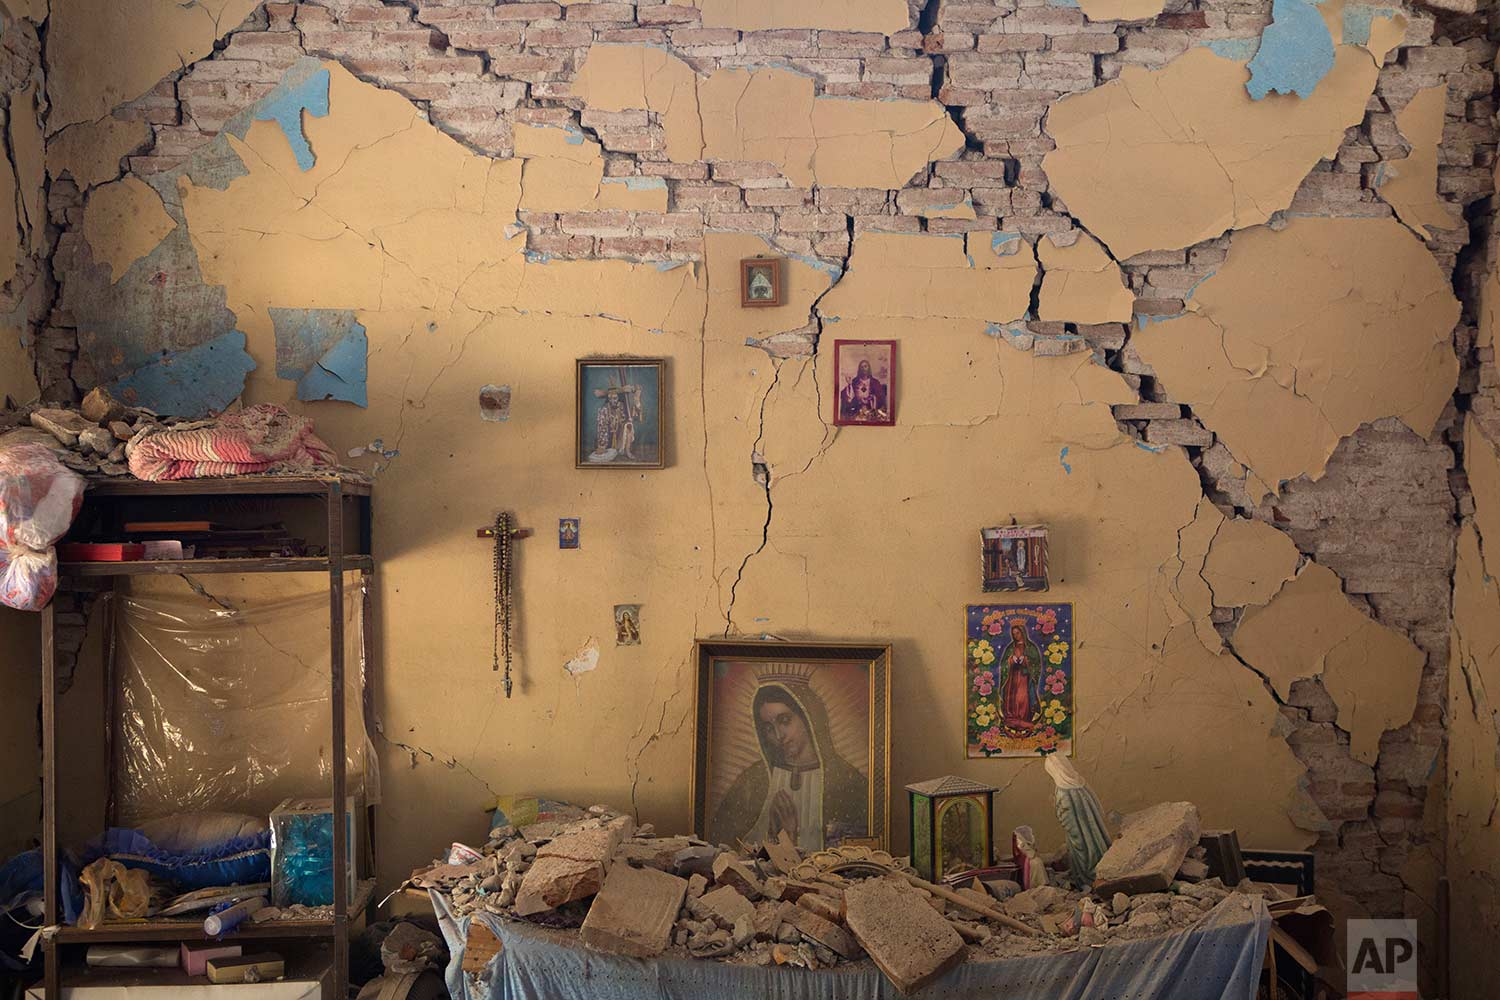 An altar to the Virgin of Guadalupe is covered with fallen debris inside the earth-damaged home where Larissa Garcia, 24, lived with her family in Juchitan, Oaxaca state, Mexico, Saturday, Sept. 9, 2017. (AP Photo/Rebecca Blackwell)